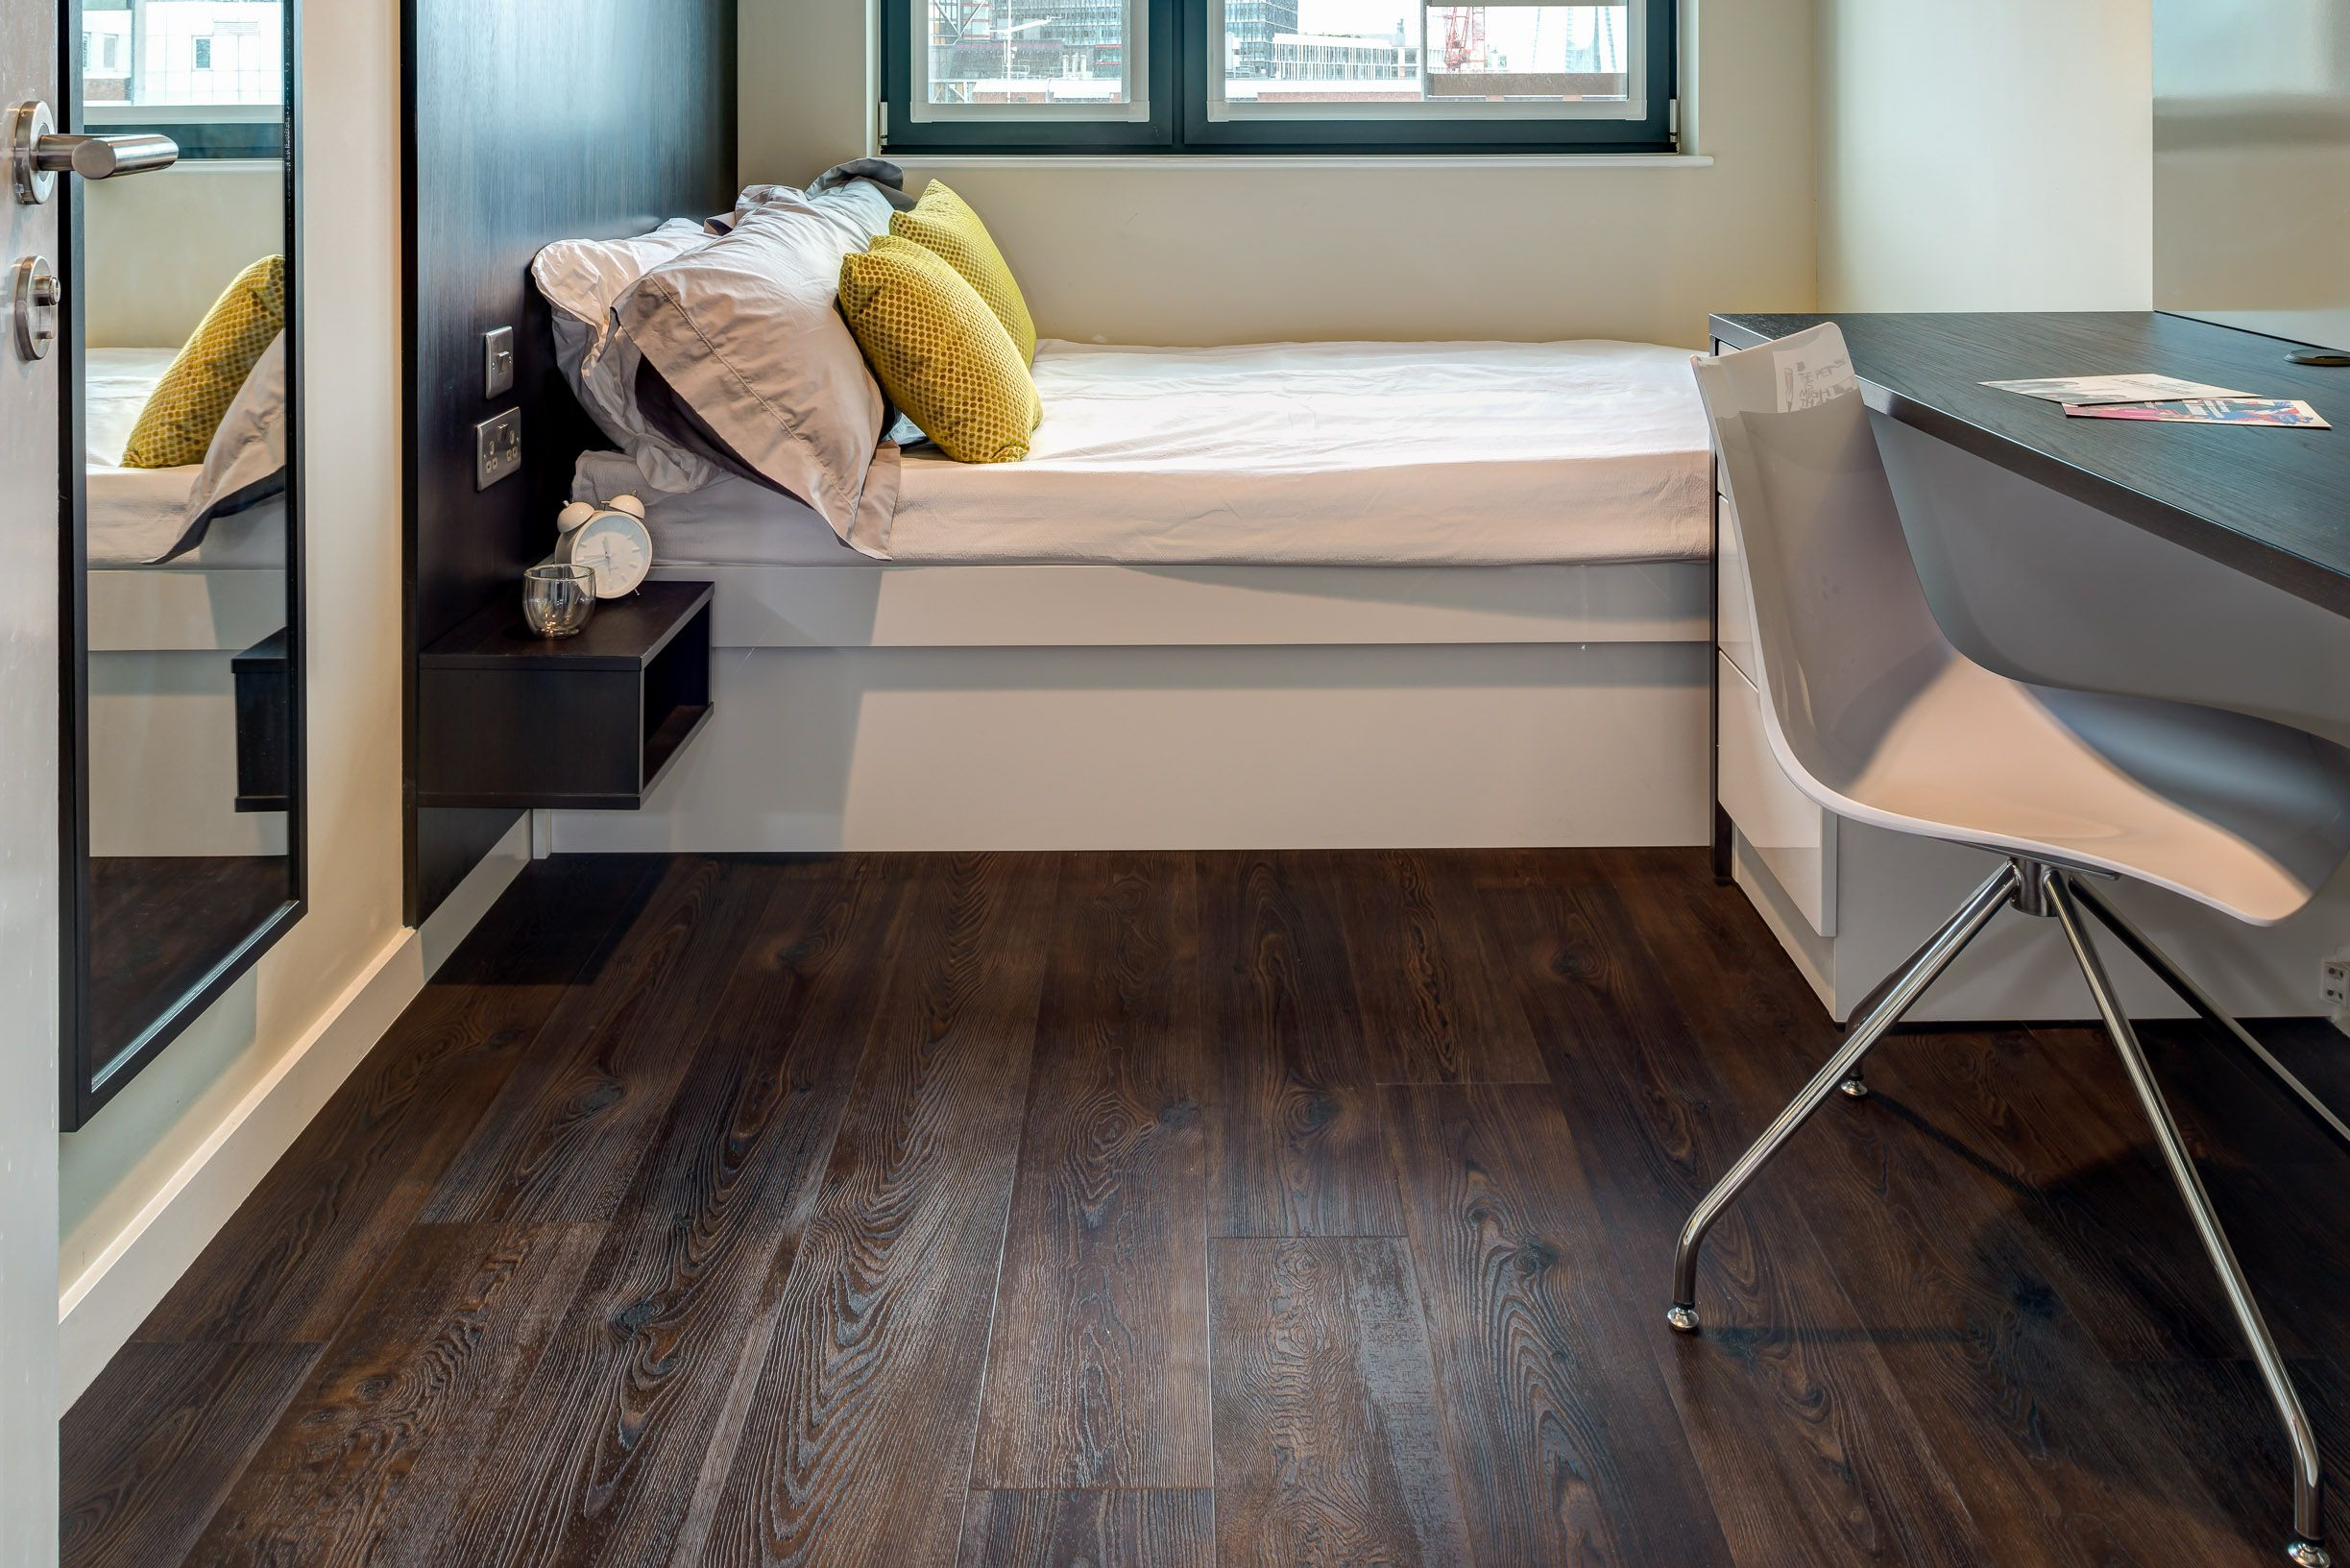 Dark Vinyl Floors With A Natural Wood Look From The Amtico